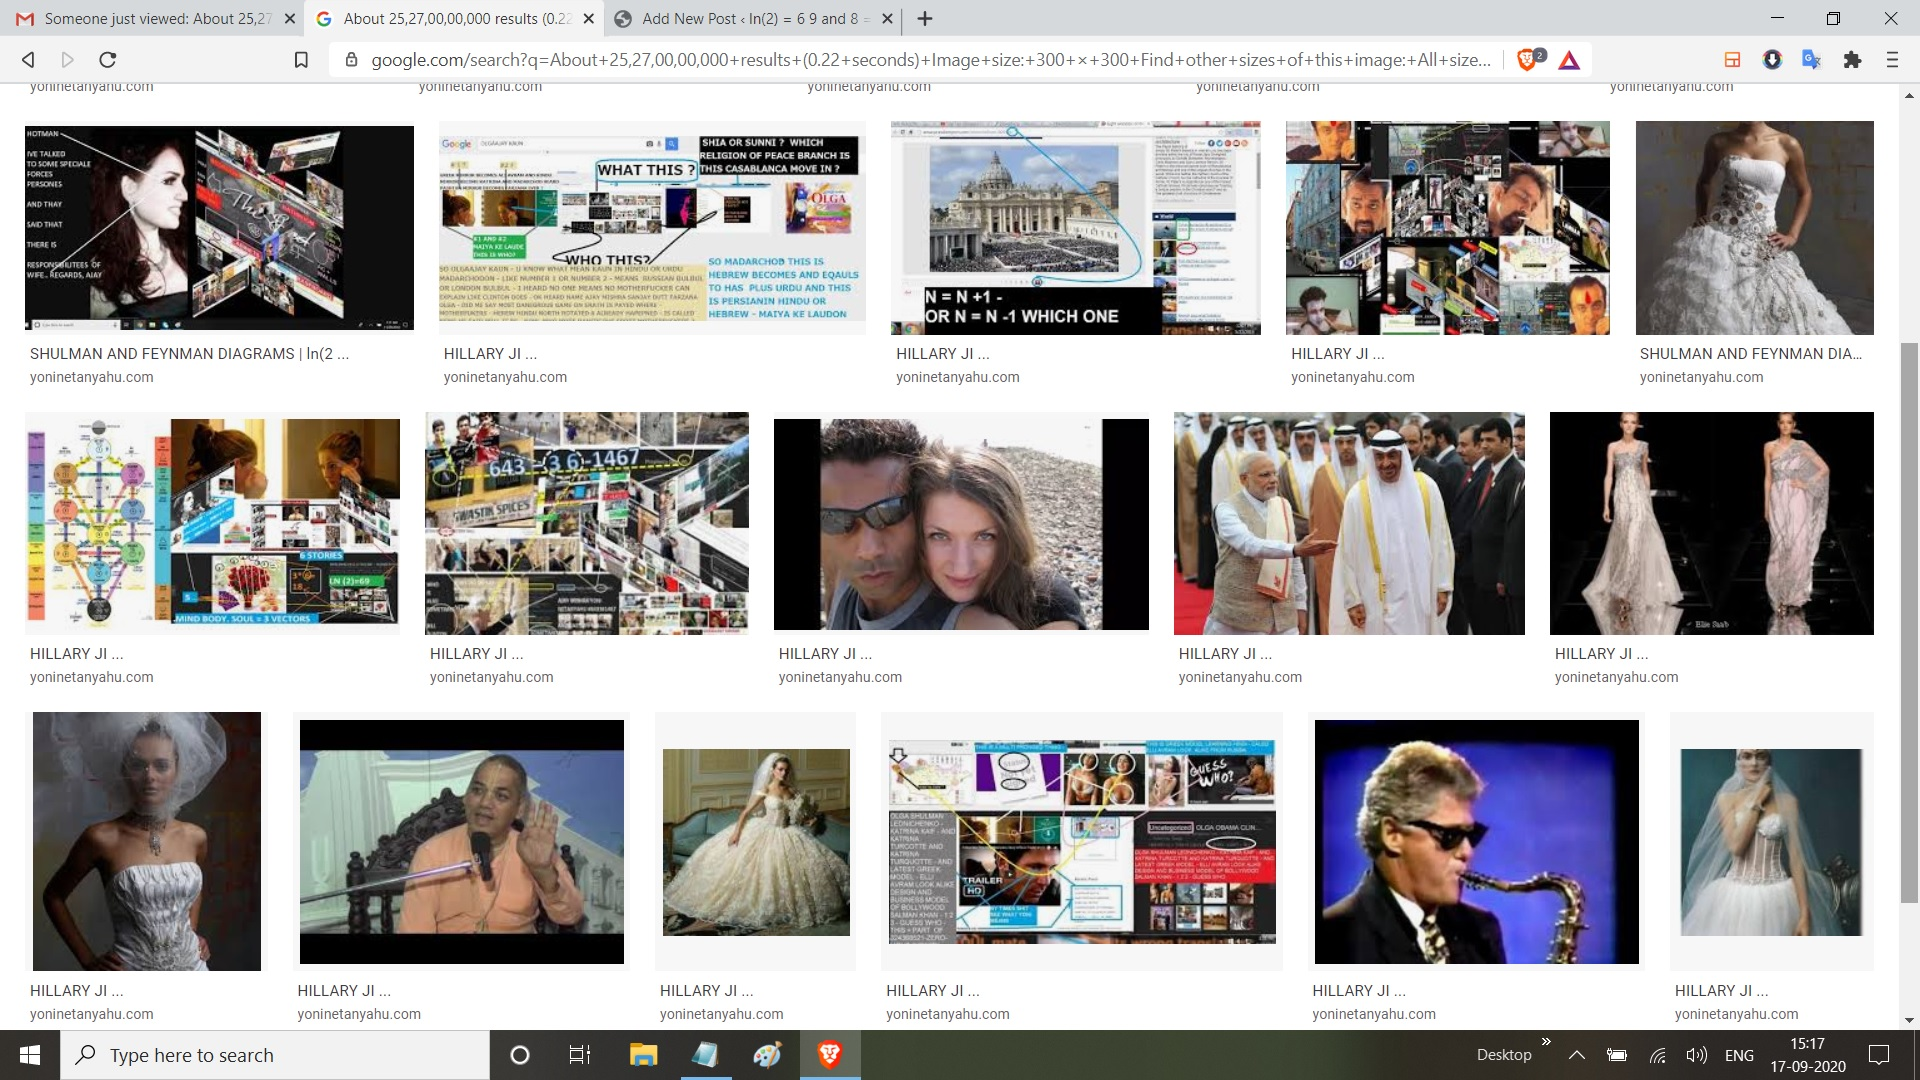 About 25,27,00,00,000 results (0.22 seconds) Image size: 300 × 300 Find other sizes of this image: All sizes - Medium Best guess for this image: olga shulman lednichenko mafia and robots Search Results Visually similar images Image result Image result Report images Pages that include matching images Web results HOTMAN SE ETHEISE – When I took office, only high energy ... yoninetanyahu.com/.../hotman-se-etheise-when-i-took-office-only-high-energy-physi... 640 × 426 - Aug 19, 2018 - ... AND OLGA IS HEAD OF MAFIA AND ROBOTS , THEIESE IS SUCH ... 2018In OLGA SHULMAN LEDNICHENKO AJAY MISHRA YONI ... FROM SANJAY DUTT TO OLGA SHULMAN LEDNICHENKO ... yoninetanyahu.com/.../from-sanjay-dutt-to-olga-shulman-lednichenko-flowers-from-... 562 × 416 - Posted on August 29, 2018 by OLGA SHULMAN LEDNICHENKO AND YONI NETANYAHU BLOG .... OLGA IS HEAD OF MAFIA AND ROBOTS AND WILLIAME ... Someone just viewed: Fwd: Someone just viewed: FROM OLGA yoninetanyahu.com/.../someone-just-viewed-fwd-someone-just-viewed-from-olga-shu... 562 × 374 - Posted on September 1, 2018 by OLGA SHULMAN LEDNICHENKO AND YONI NETANYAHU ..... OLGA IS HEAD OF MAFIA AND ROBOTS AND WILLIAME ... August | 2018 - olga shulman lednichenko and yoni netanyahu yoninetanyahu.com/2018/08/19/ 640 × 426 - Aug 19, 2018 - 10 posts published by OLGA SHULMAN LEDNICHENKO AND YONI ... AND OLGA IS HEAD OF MAFIA AND ROBOTS , THEIESE IS SUCH ... 208 Westhaven | www.picswe.com https://www.picswe.com/pics/208-westhaven-59.html 1024 × 682 - 208 Westhaven - www.picswe.com - we have all pics! , we have all the best pics waiting for you! Page navigation 1 2 Next